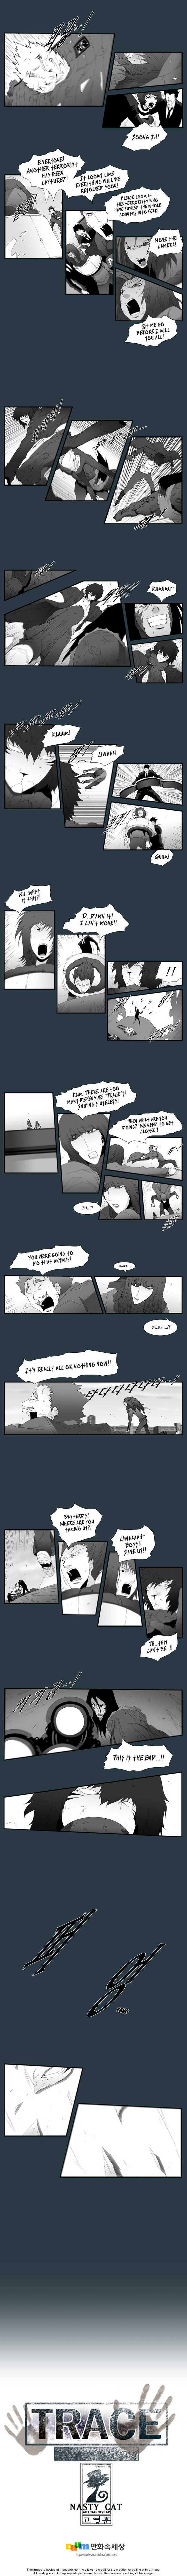 Trace 10 Page 2